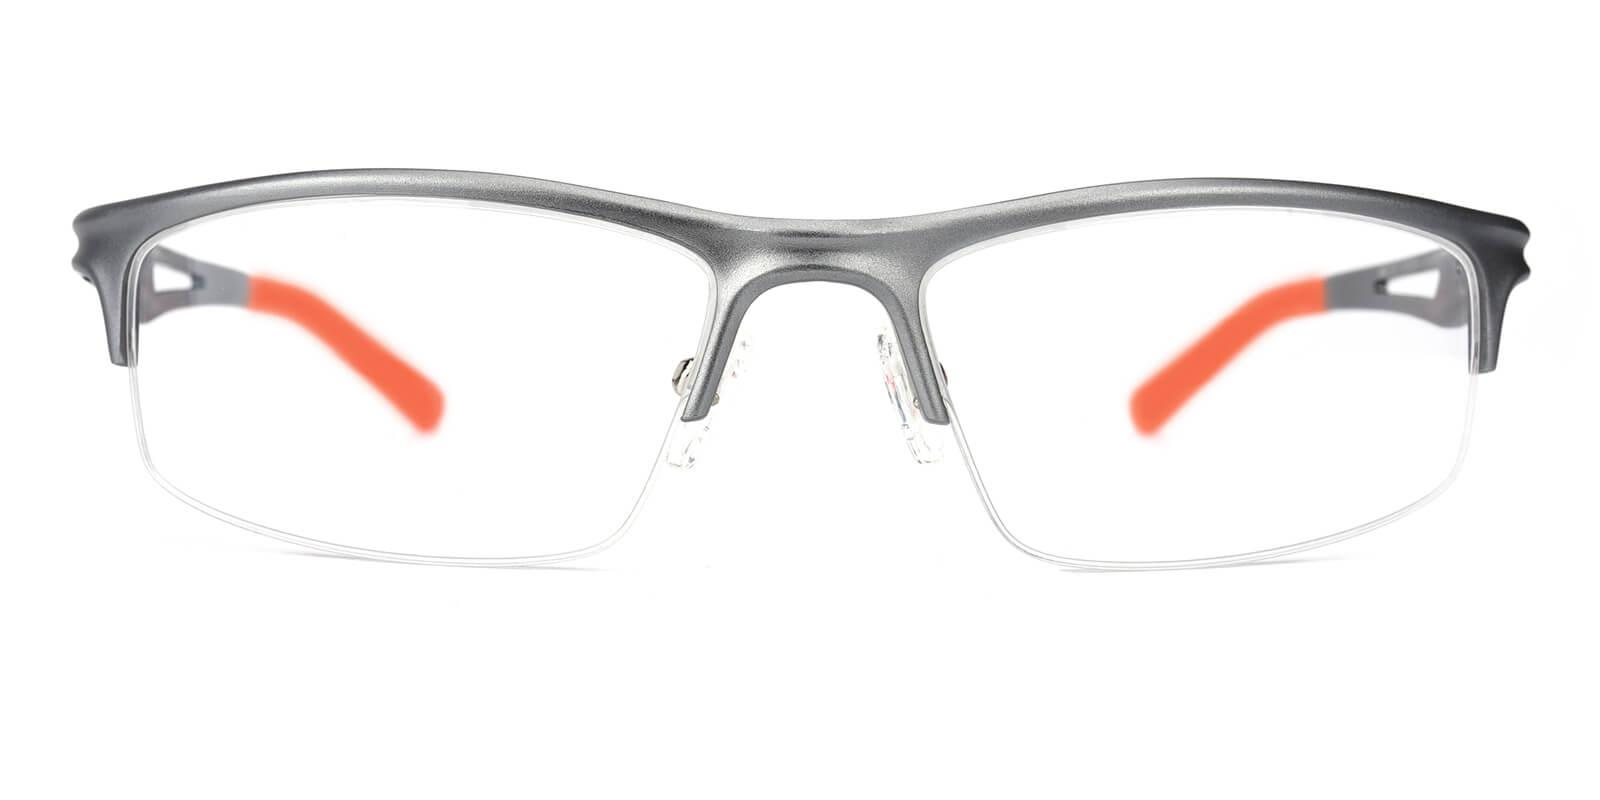 Muhammad-Gun-Rectangle-Metal-Eyeglasses-additional2